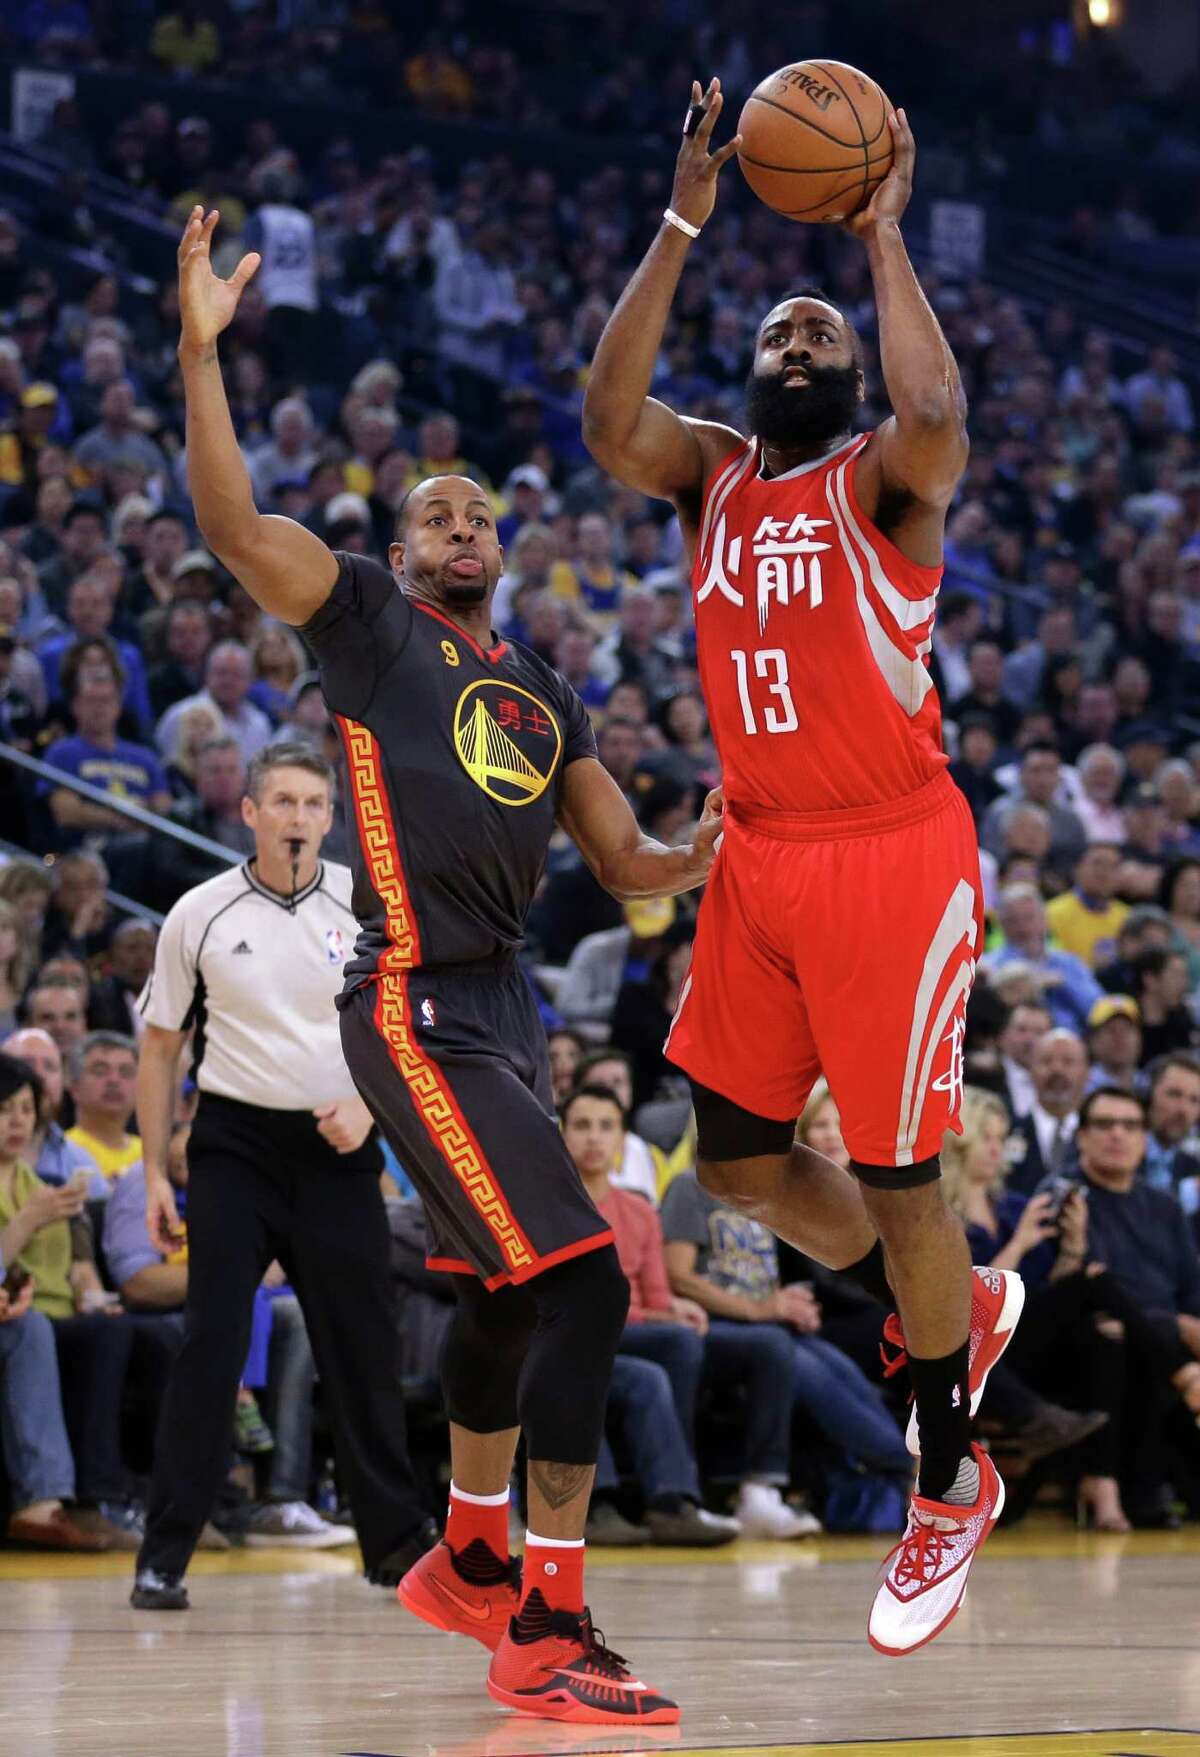 Houston Rockets' James Harden, right, shoots over Golden State Warriors' Andre Iguodala during the first half of an NBA basketball game Tuesday, Feb. 9, 2016, in Oakland, Calif. (AP Photo/Ben Margot)